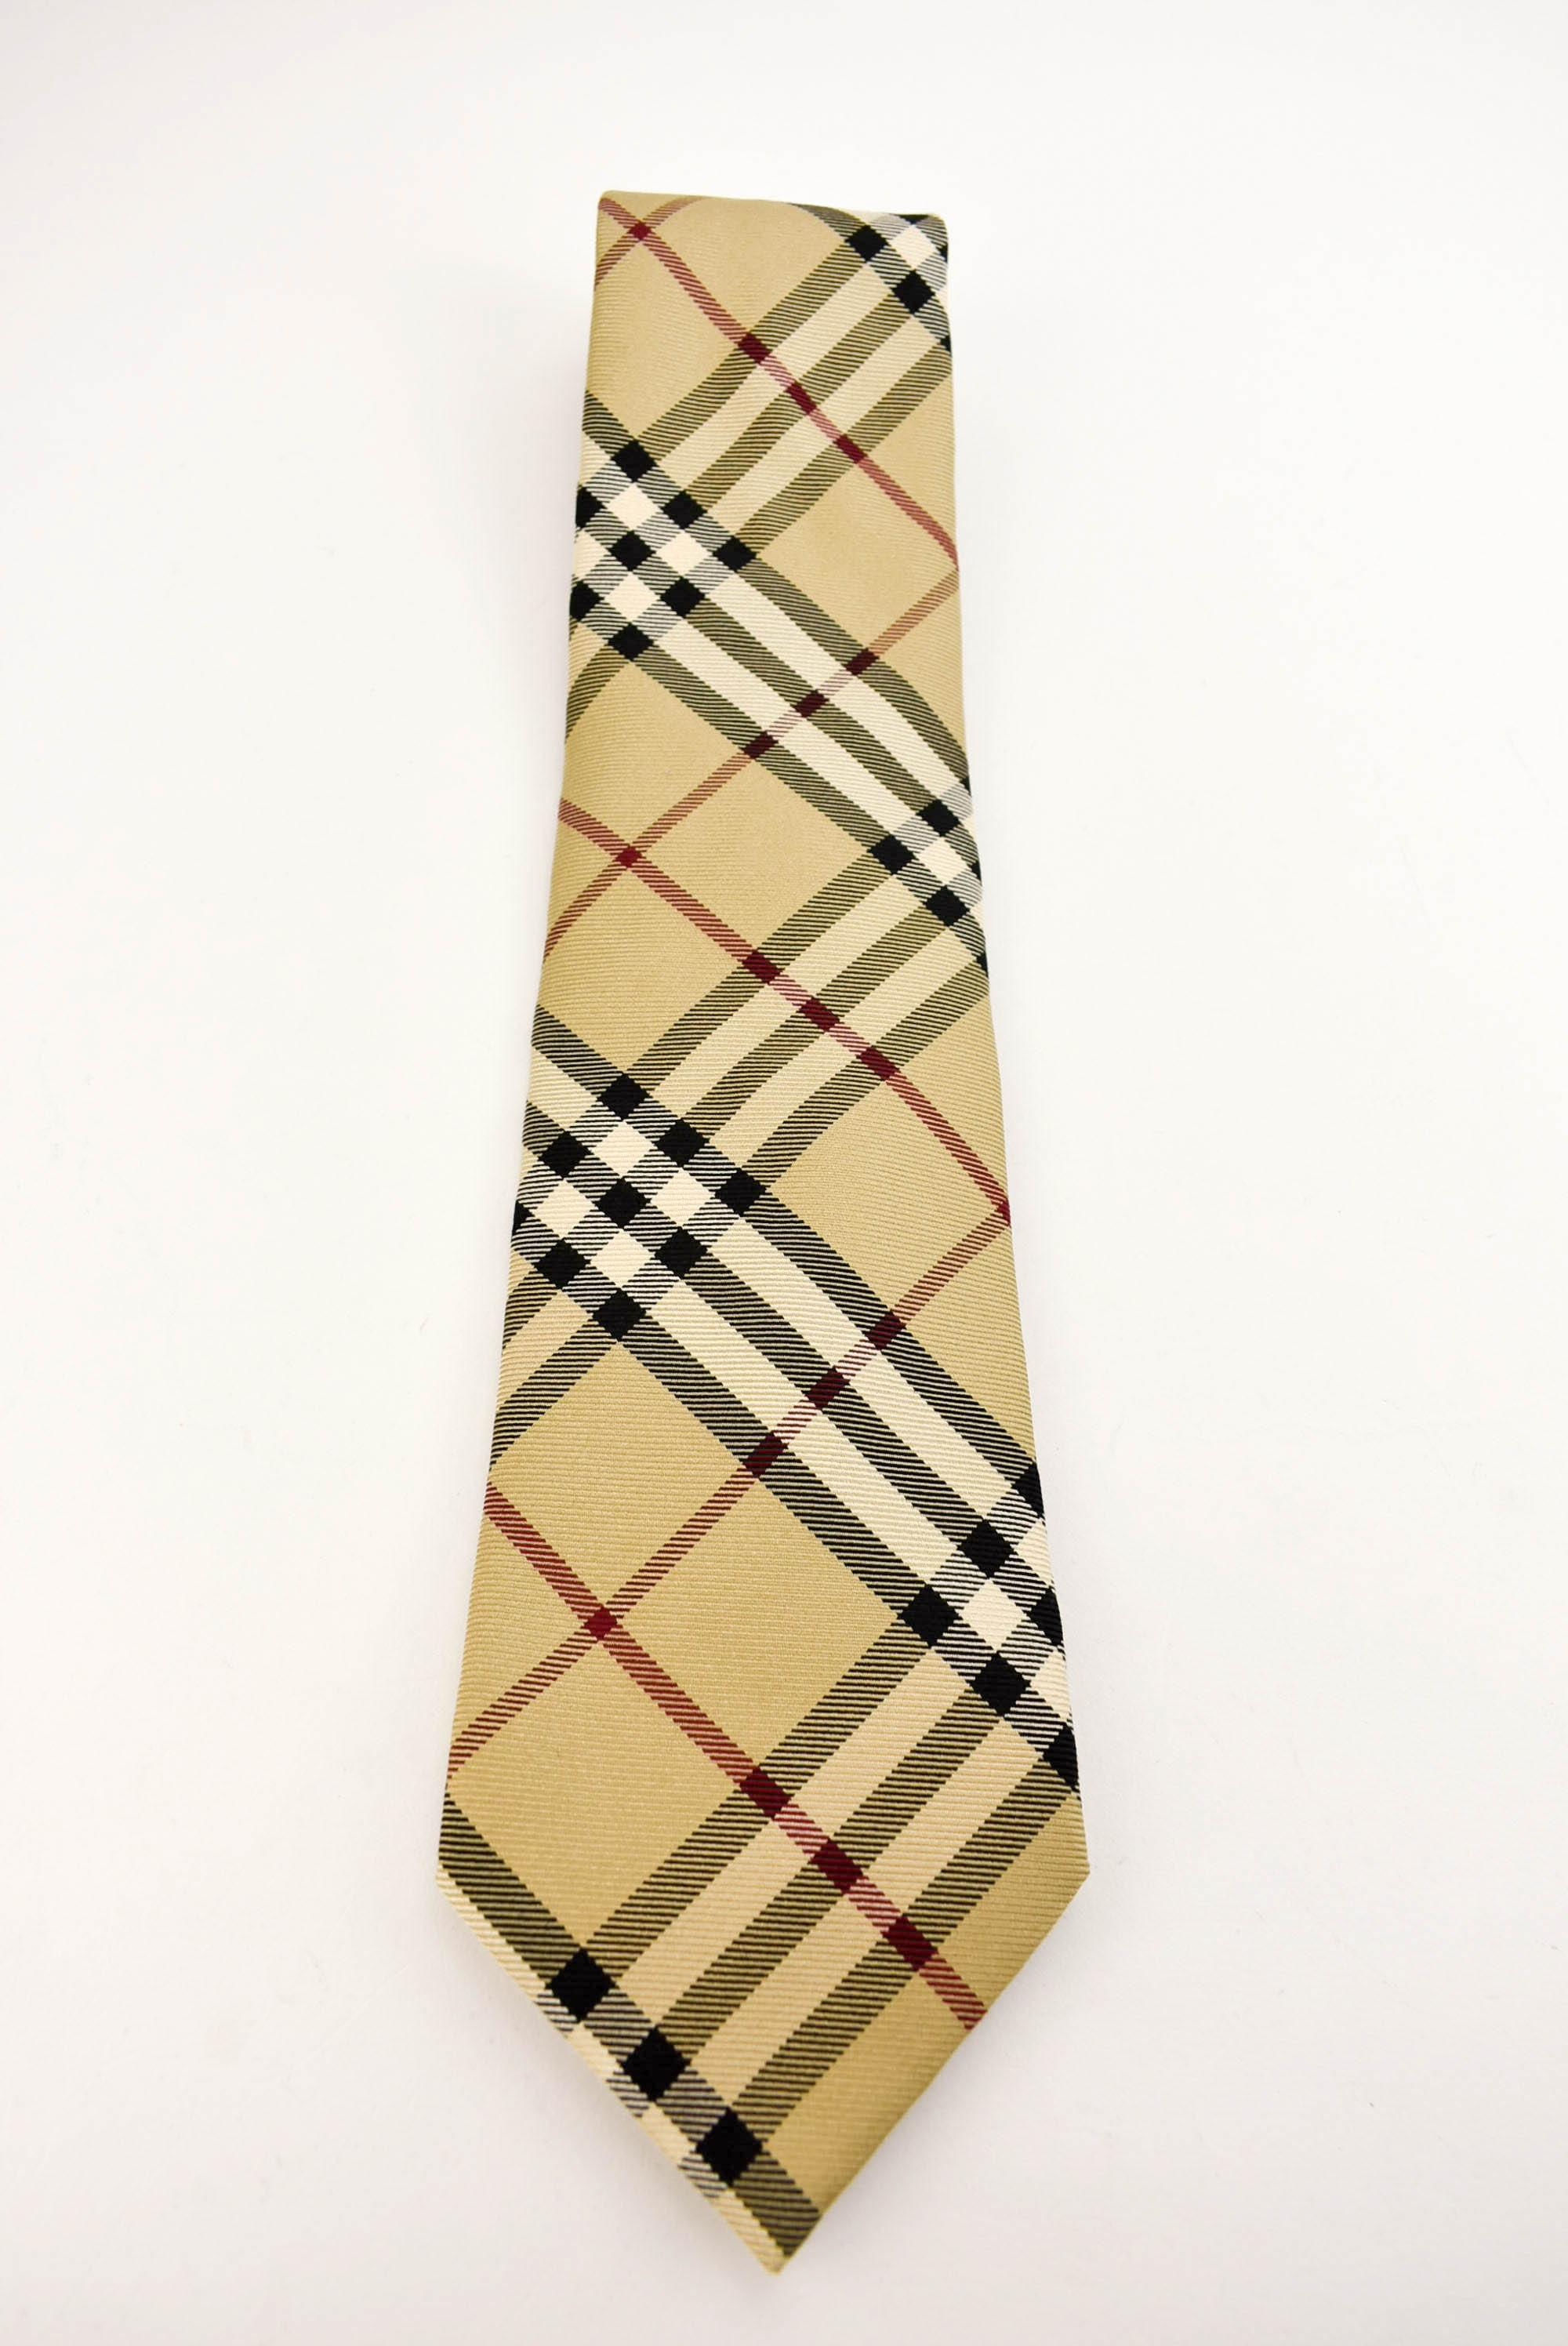 d066d1ef47b0 ... discount code for burberry beige nova check 100 silk tie 60f09 252d4 ...